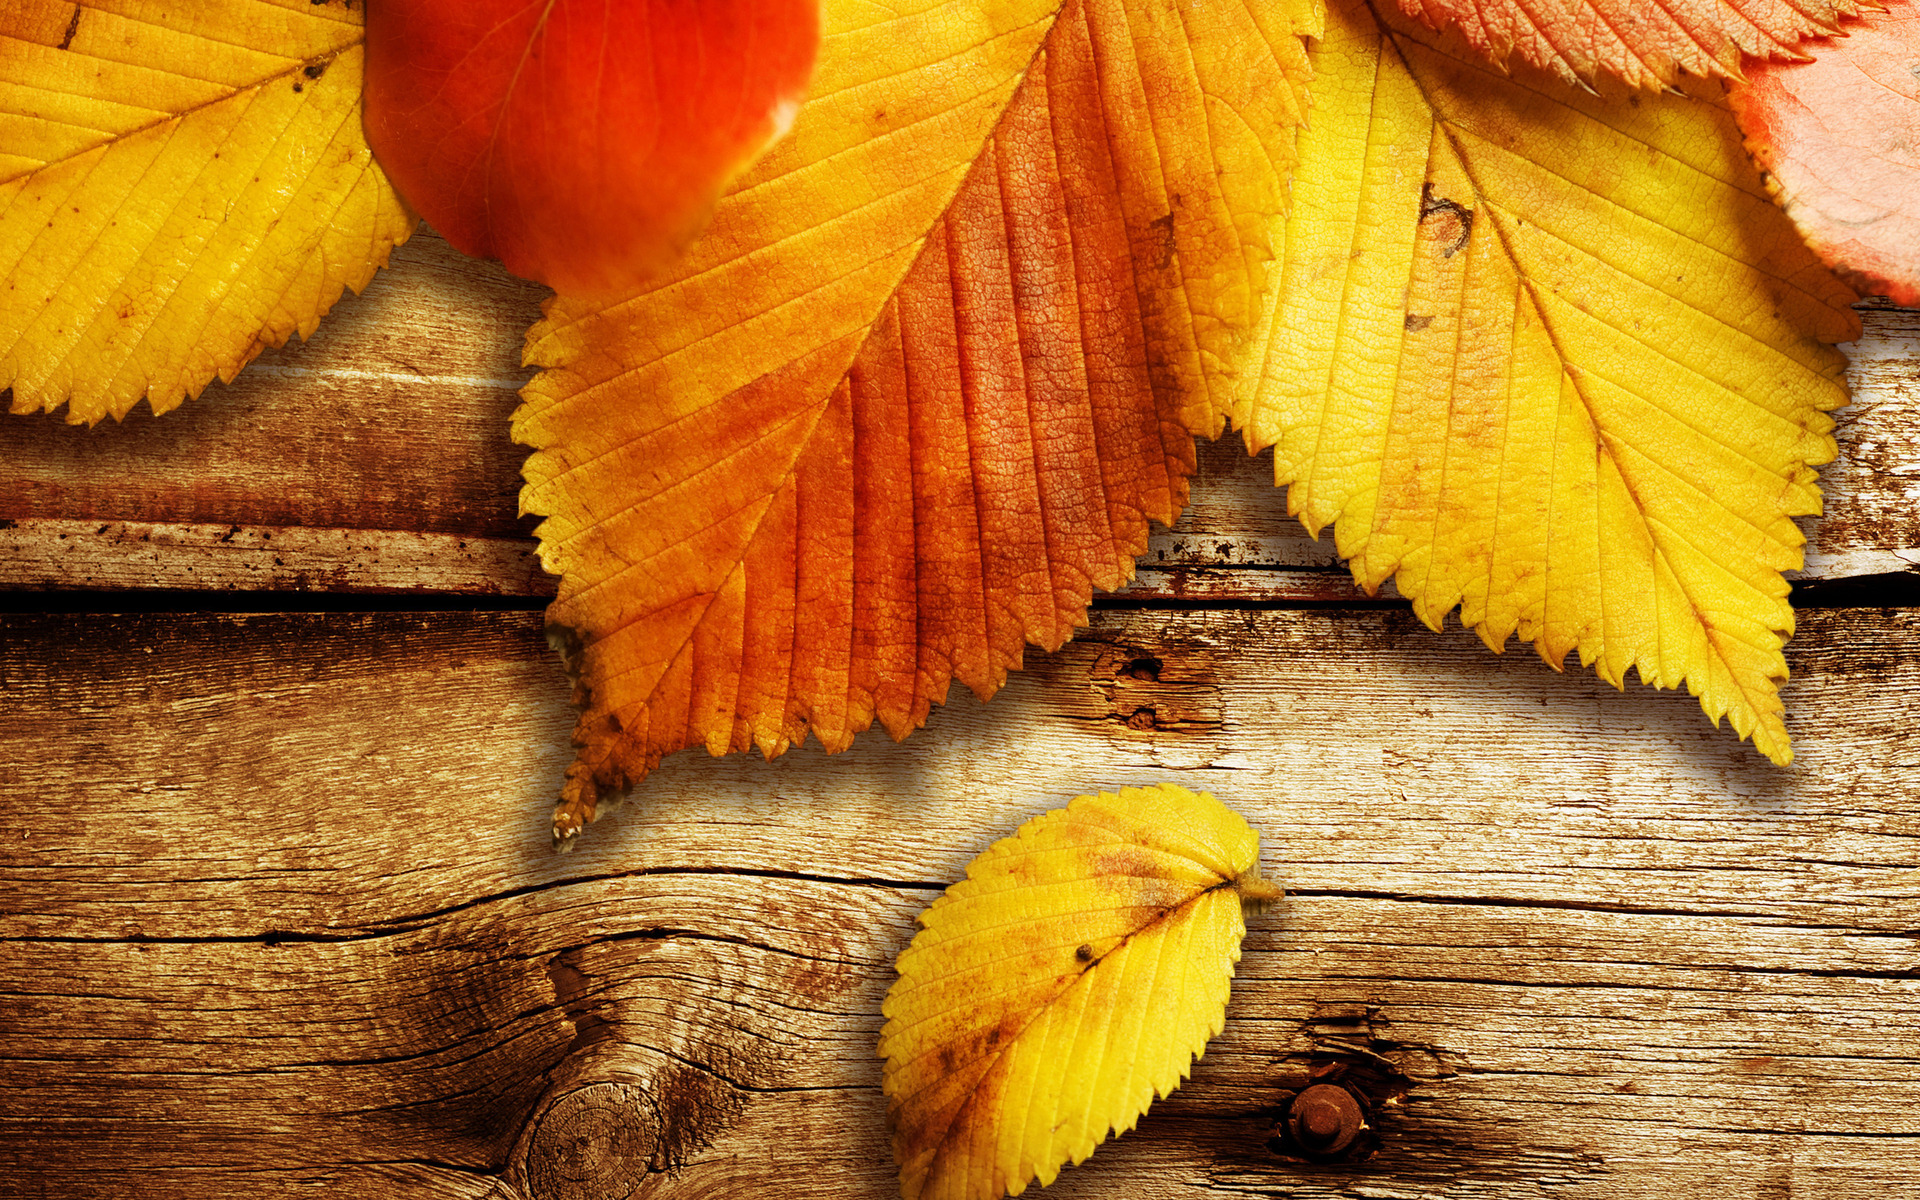 Autumn Leaves Wallpaper 1920x1200 70286